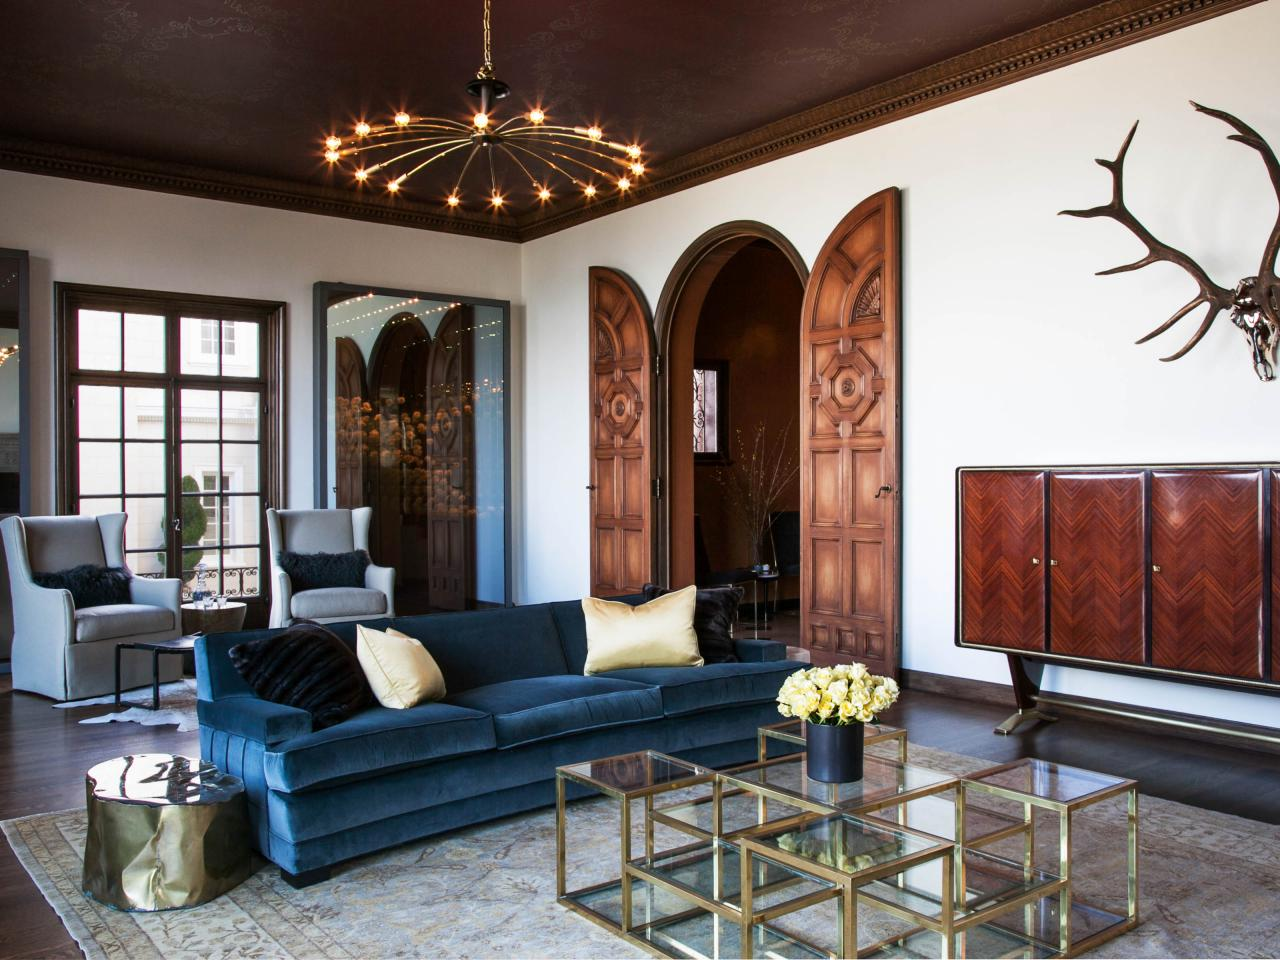 Living Room With a Velvet Sofa and Copper Tin Ceiling  HGTV